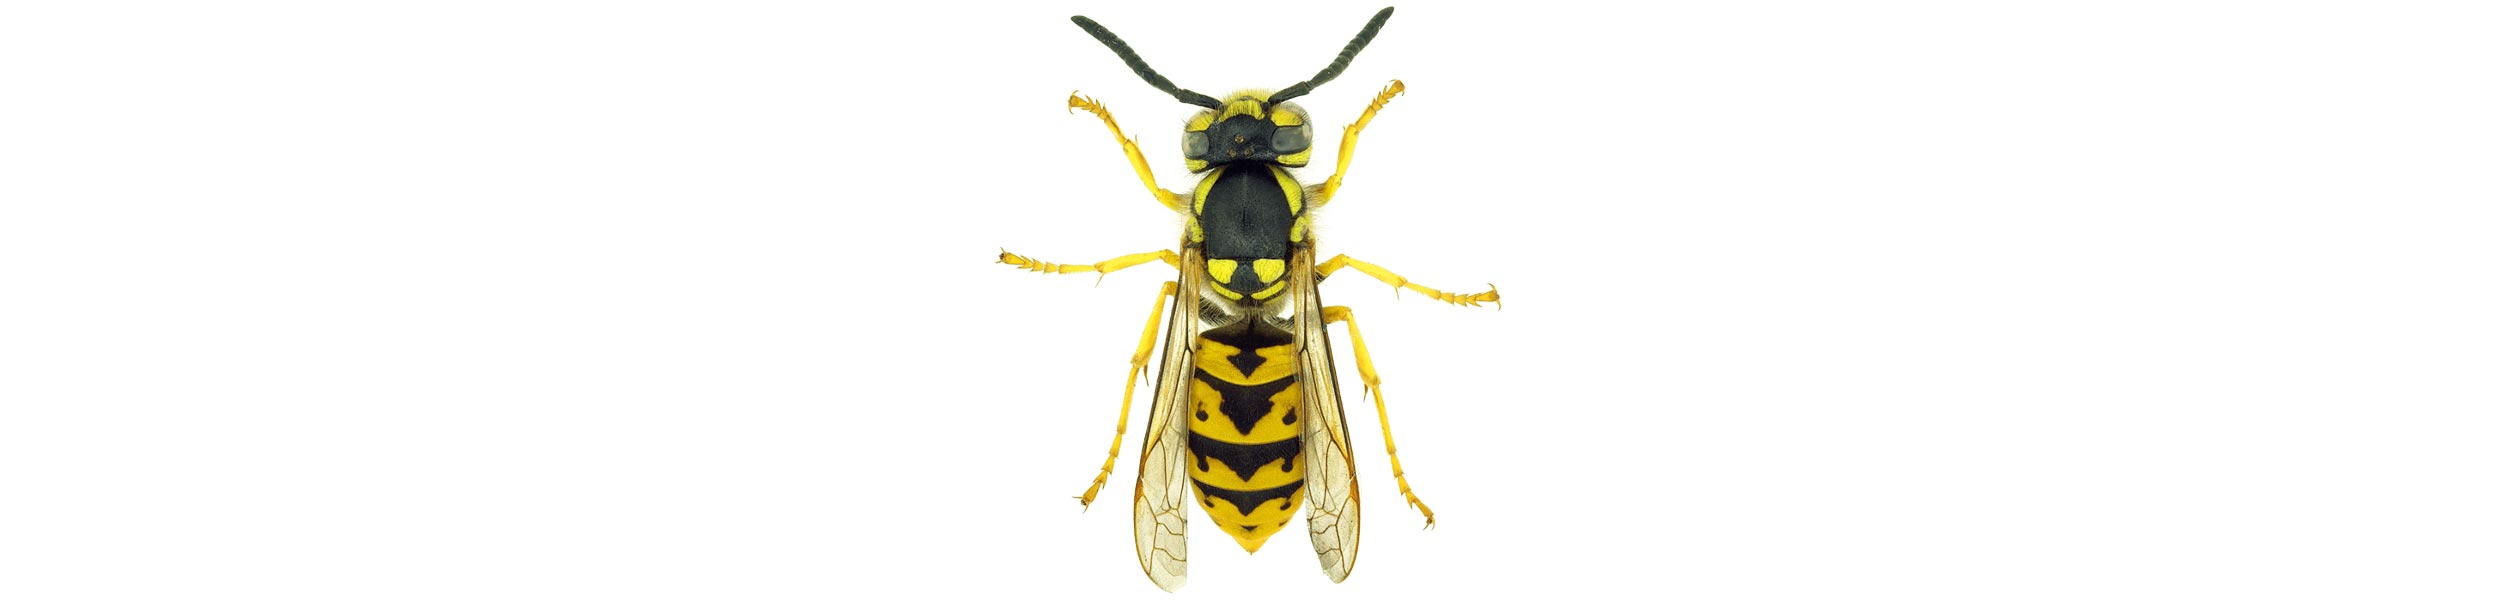 OPC-Pest-Control-Wasps-Header